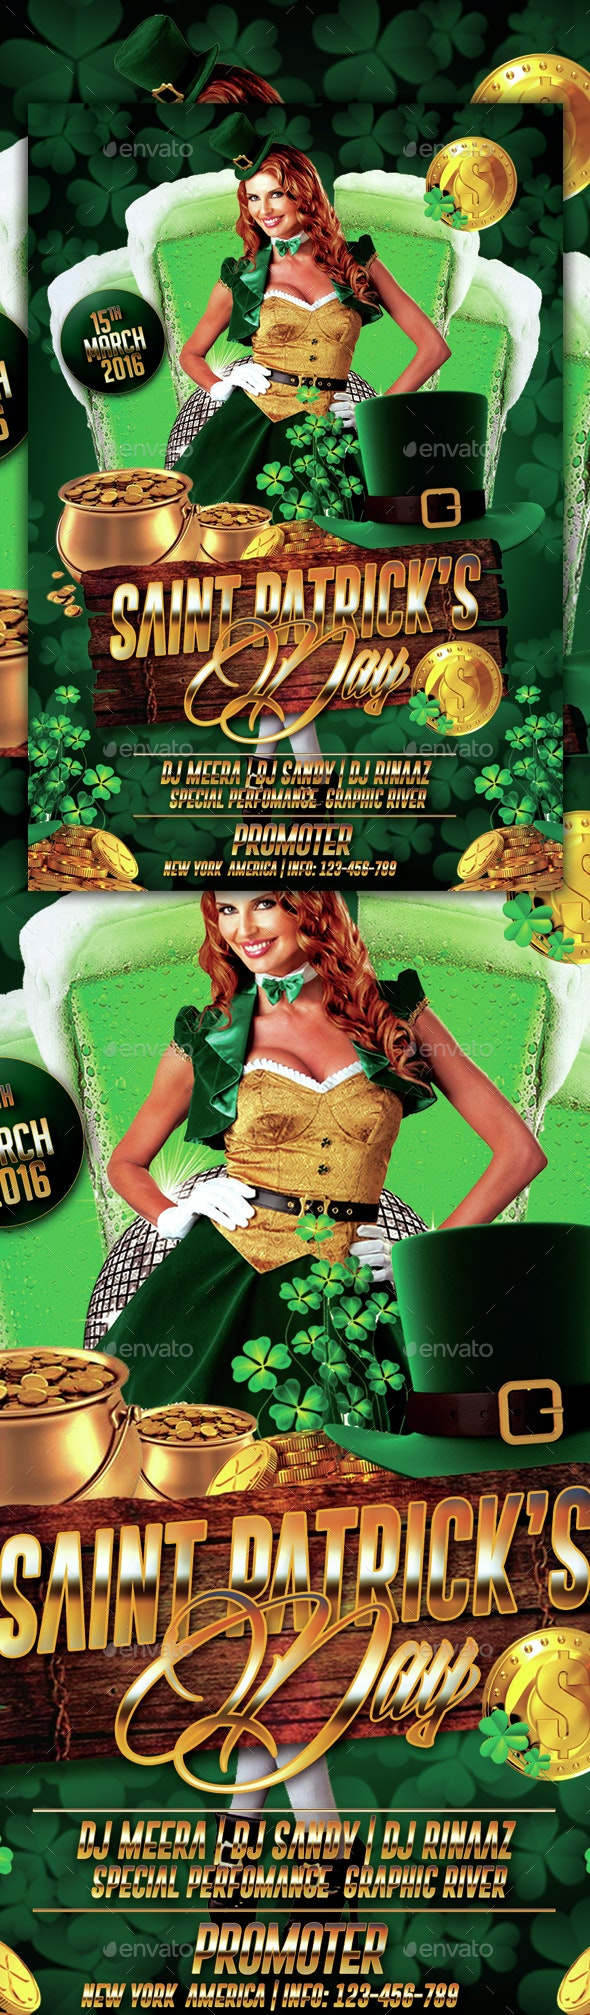 Saint Patrick's Day Party Flyer - Events Flyers